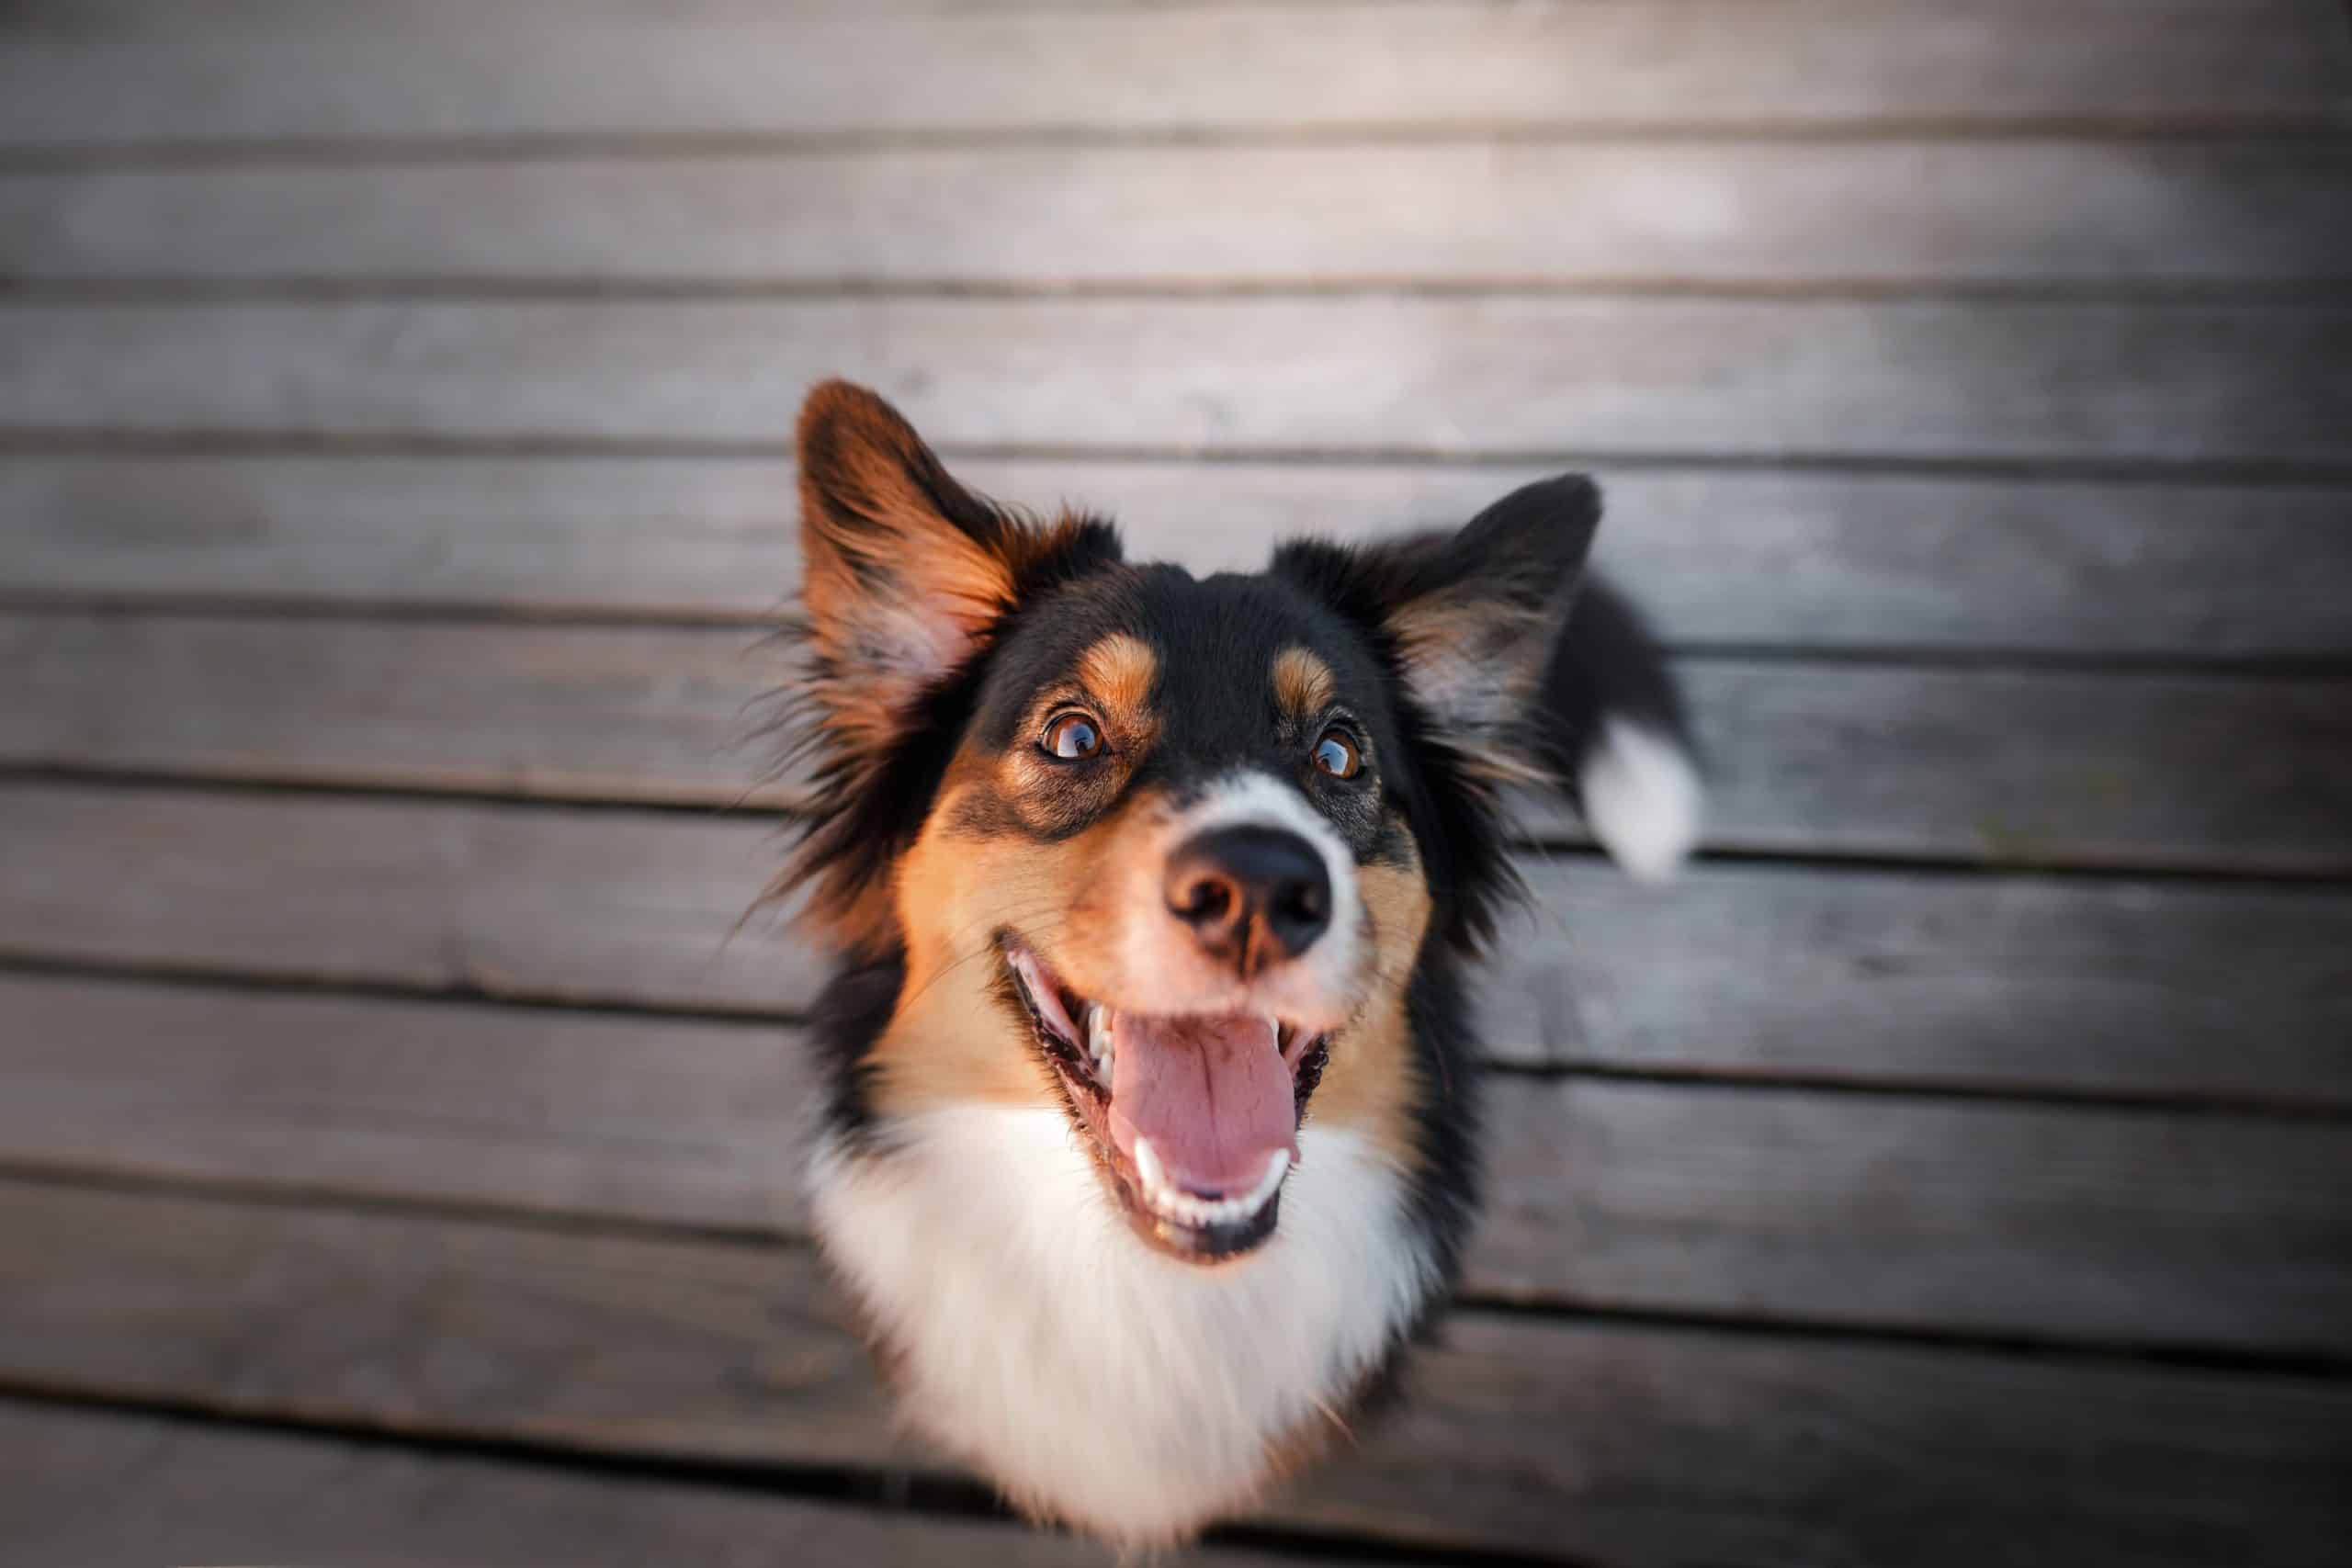 Happy Australian Shepherd. Attending obedience classes helps give your dog confidence.